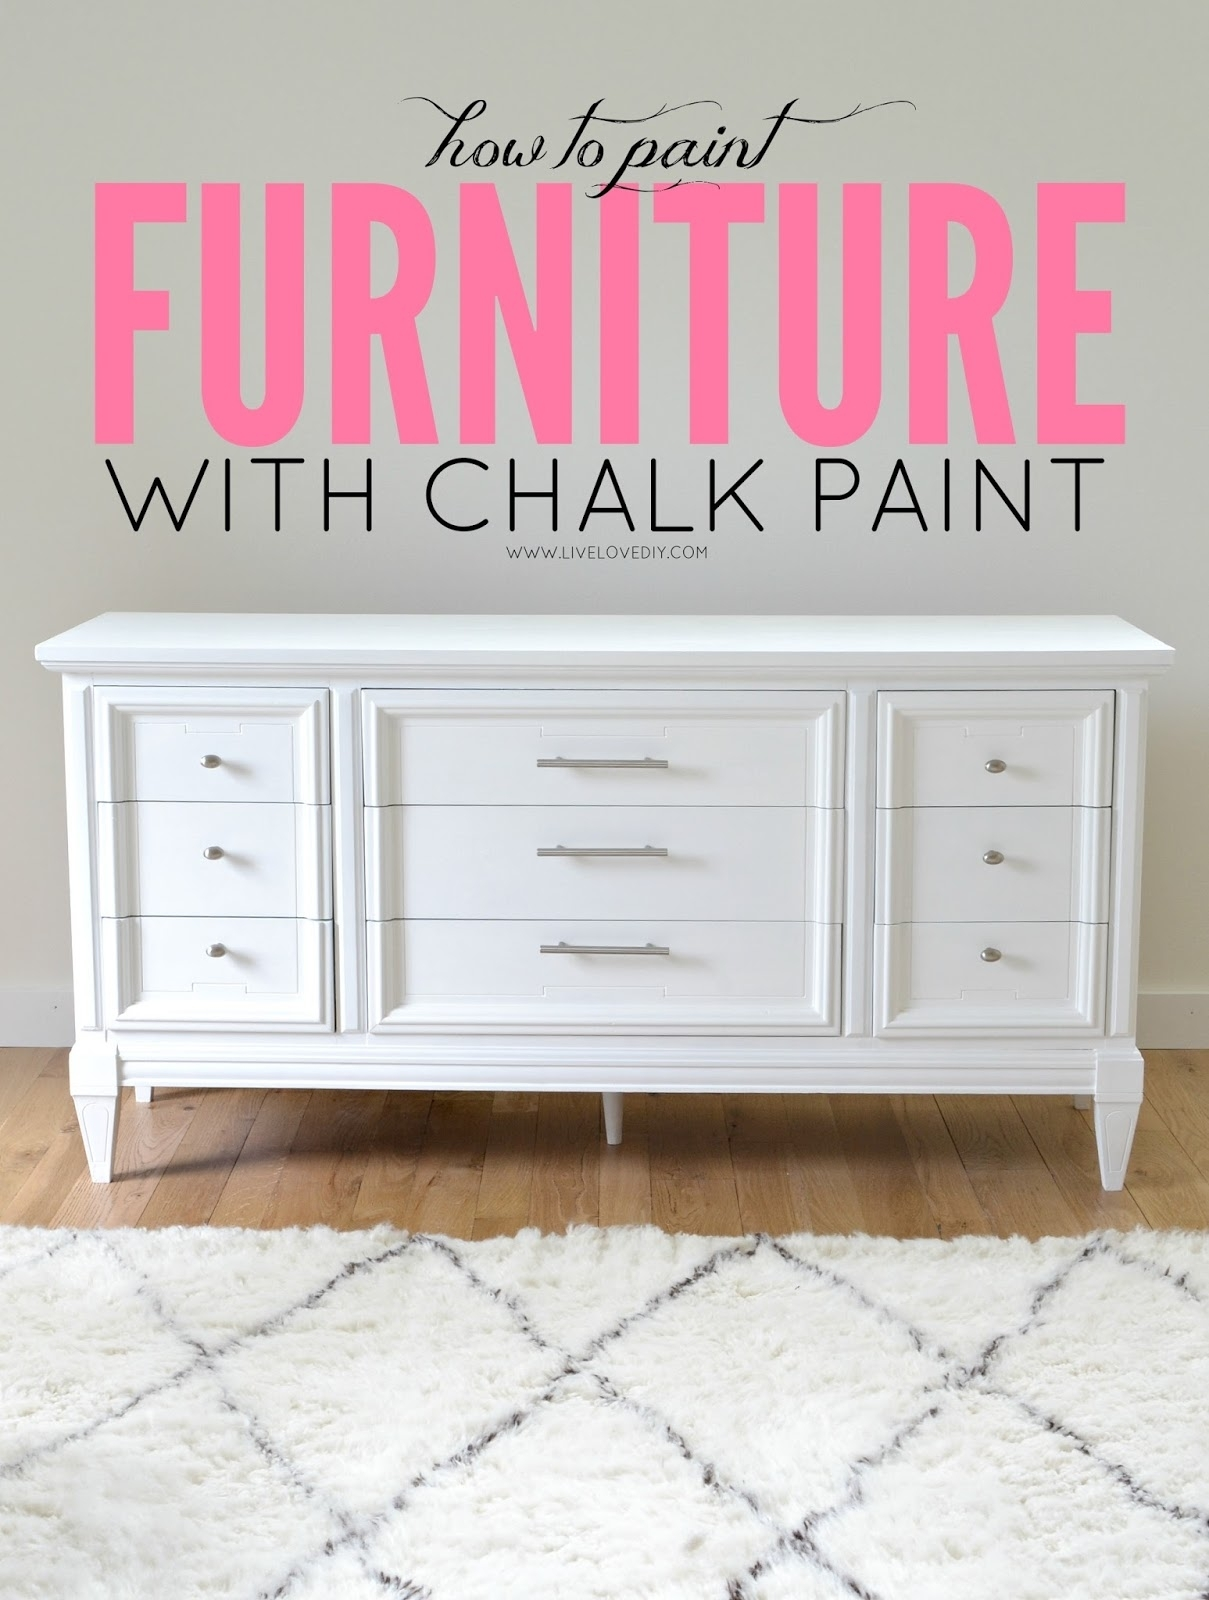 Livelovediy: How To Paint Furniture With Chalk Paint (And How To with regard to Satin Black & Painted White Sideboards (Image 15 of 30)